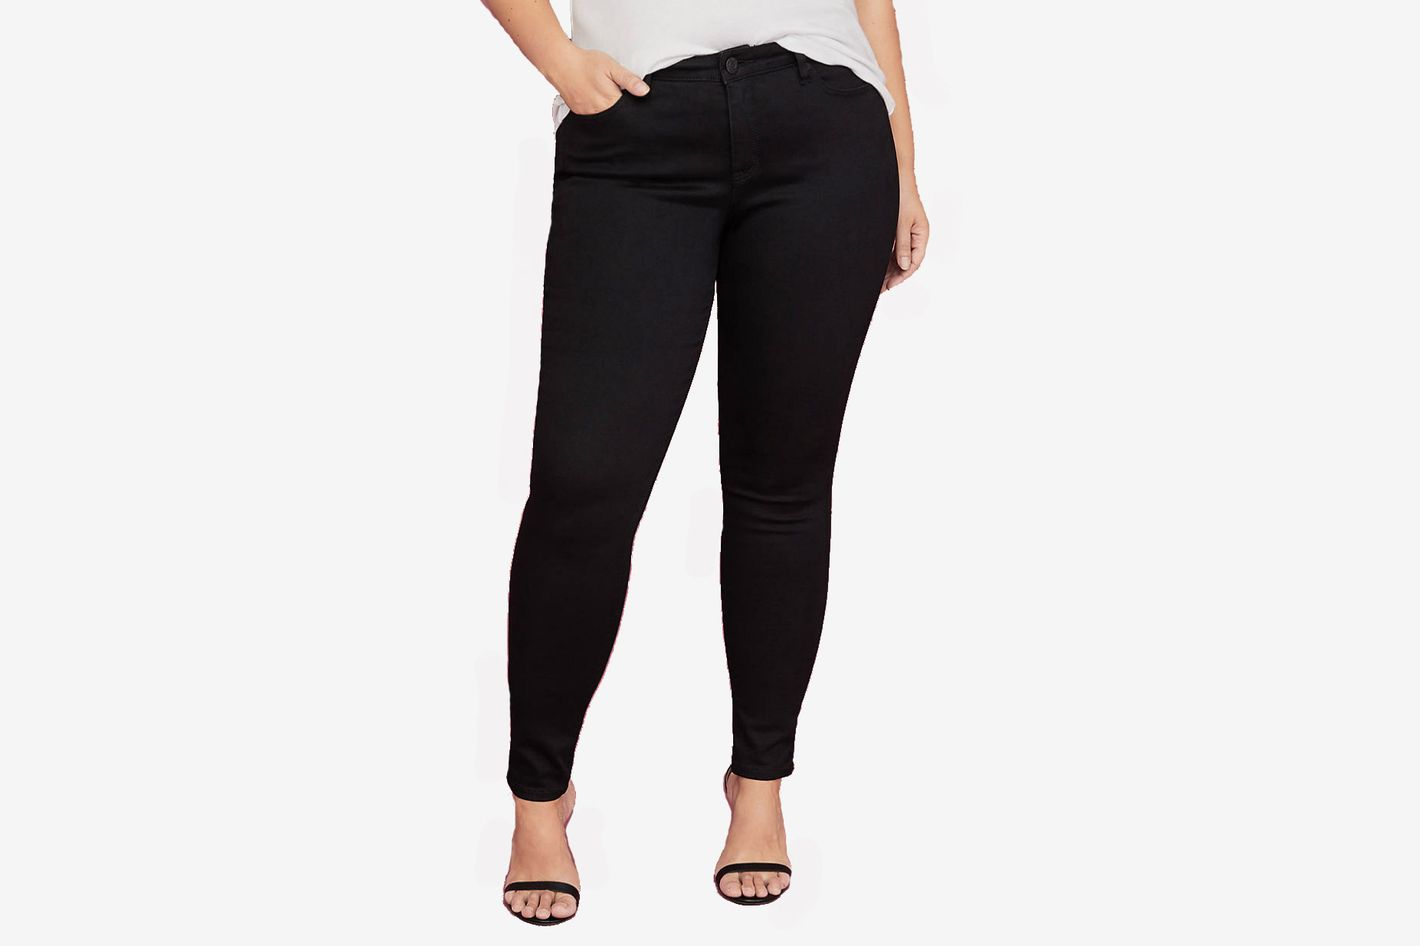 0fd8bbfc426a Best shape-retaining plus-size jeans. Lane Bryant Super Stretch Skinny  Ankle Jeans with Power Pockets